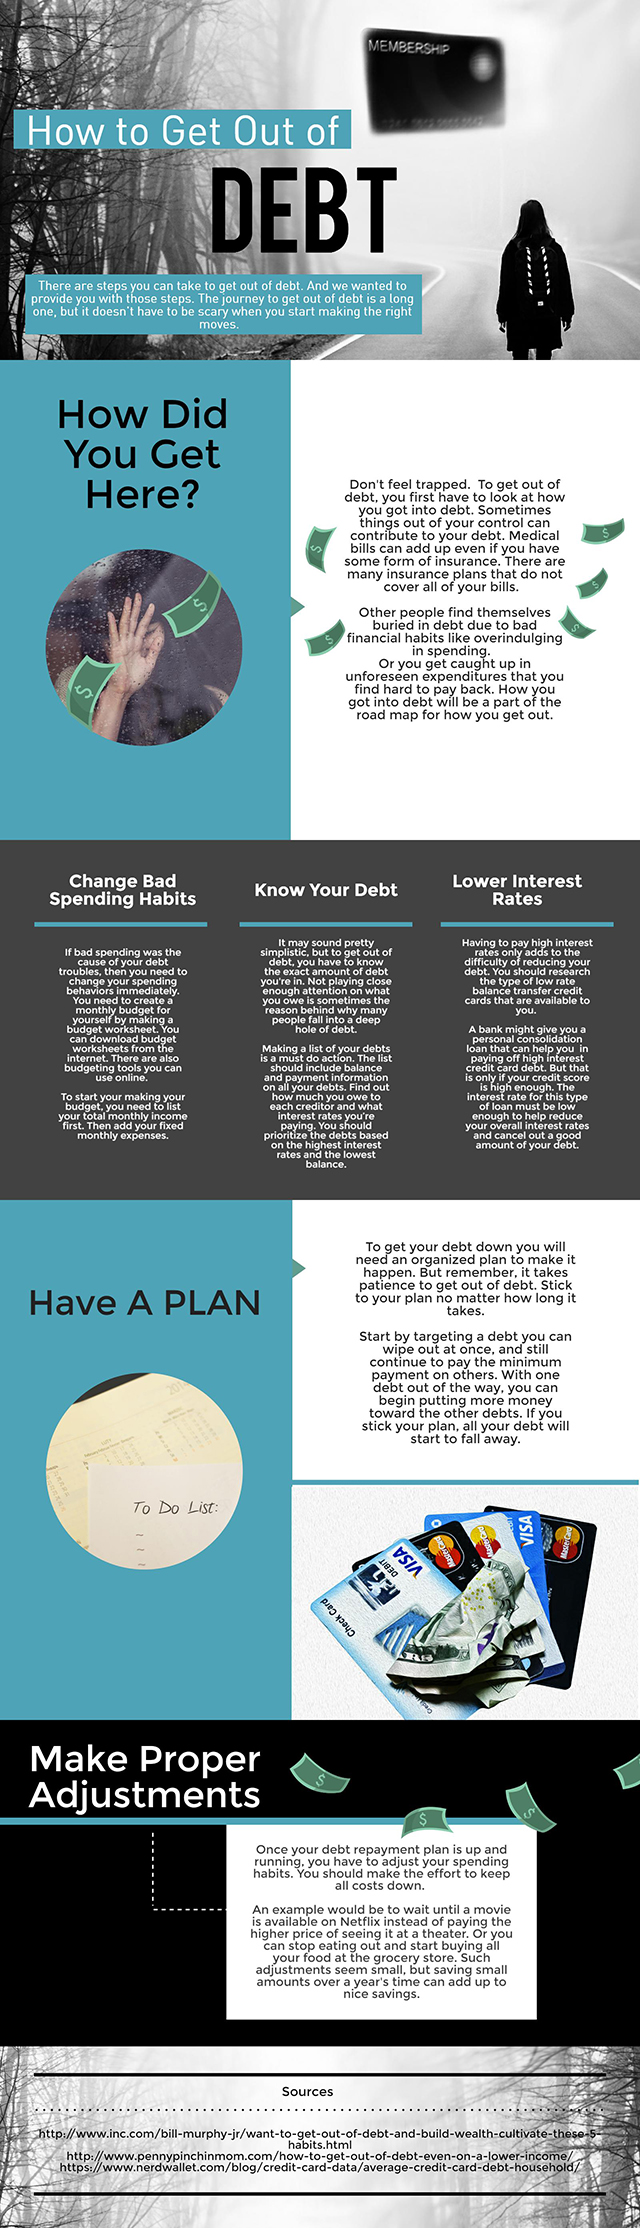 How to Get Out of Debt - Infographic